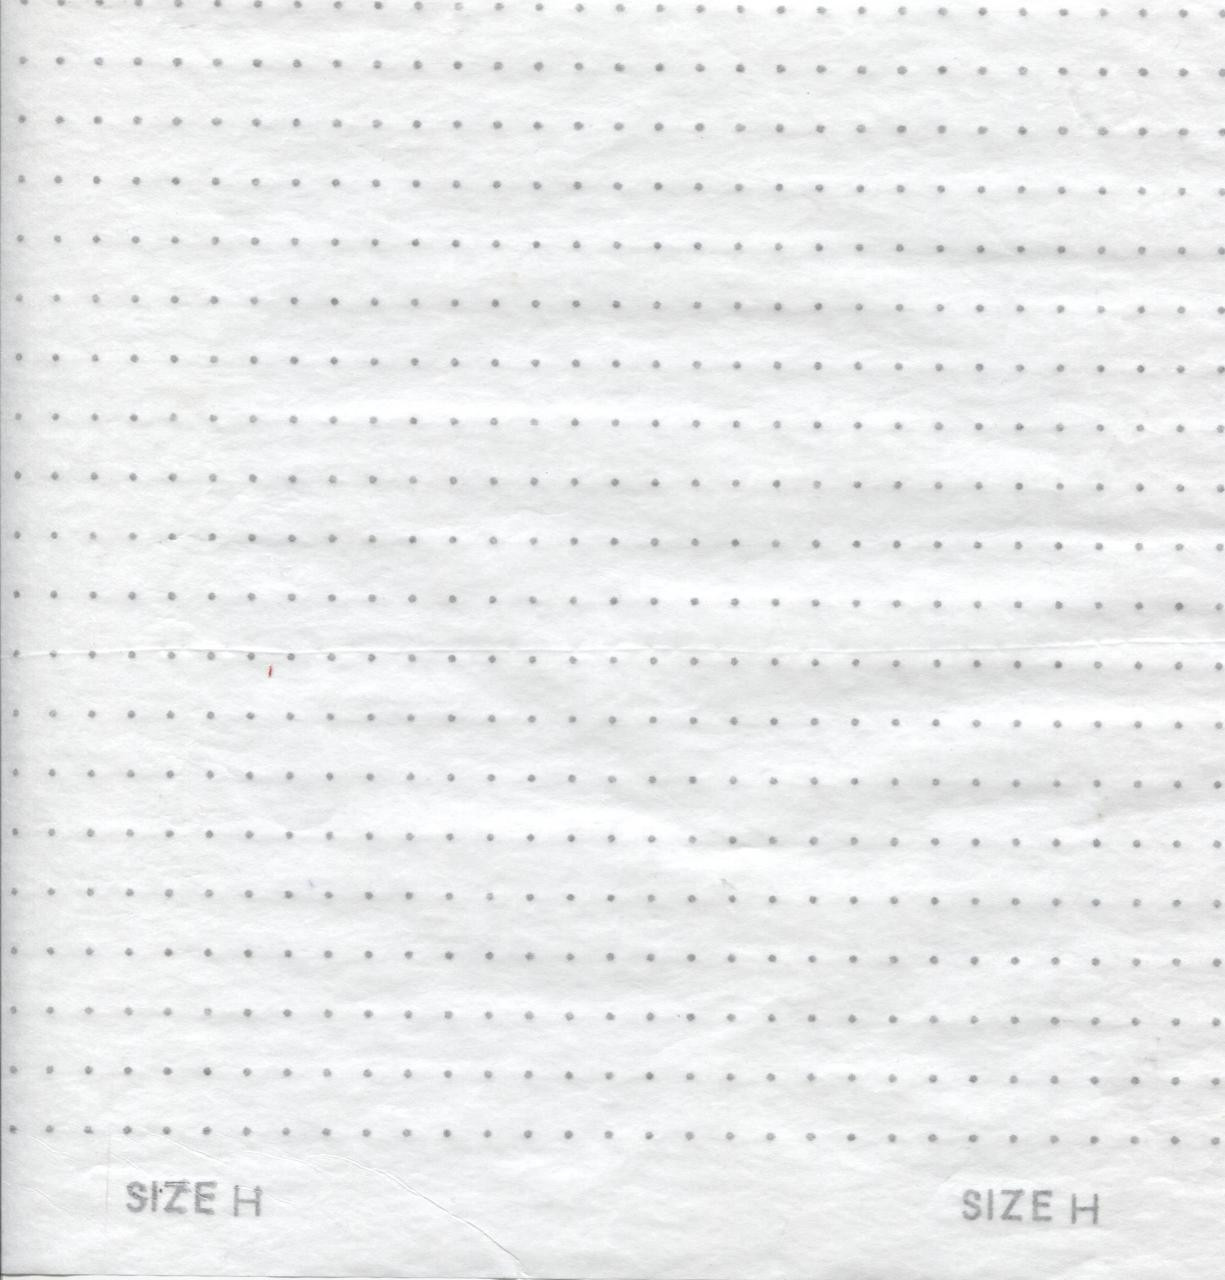 Smocking Transfer Dots - Size 'H' 6.5 mm x 9.5 mm - Use this size for girl's dresses - see video on how to use - one sheet in each pack - not designed to wash off